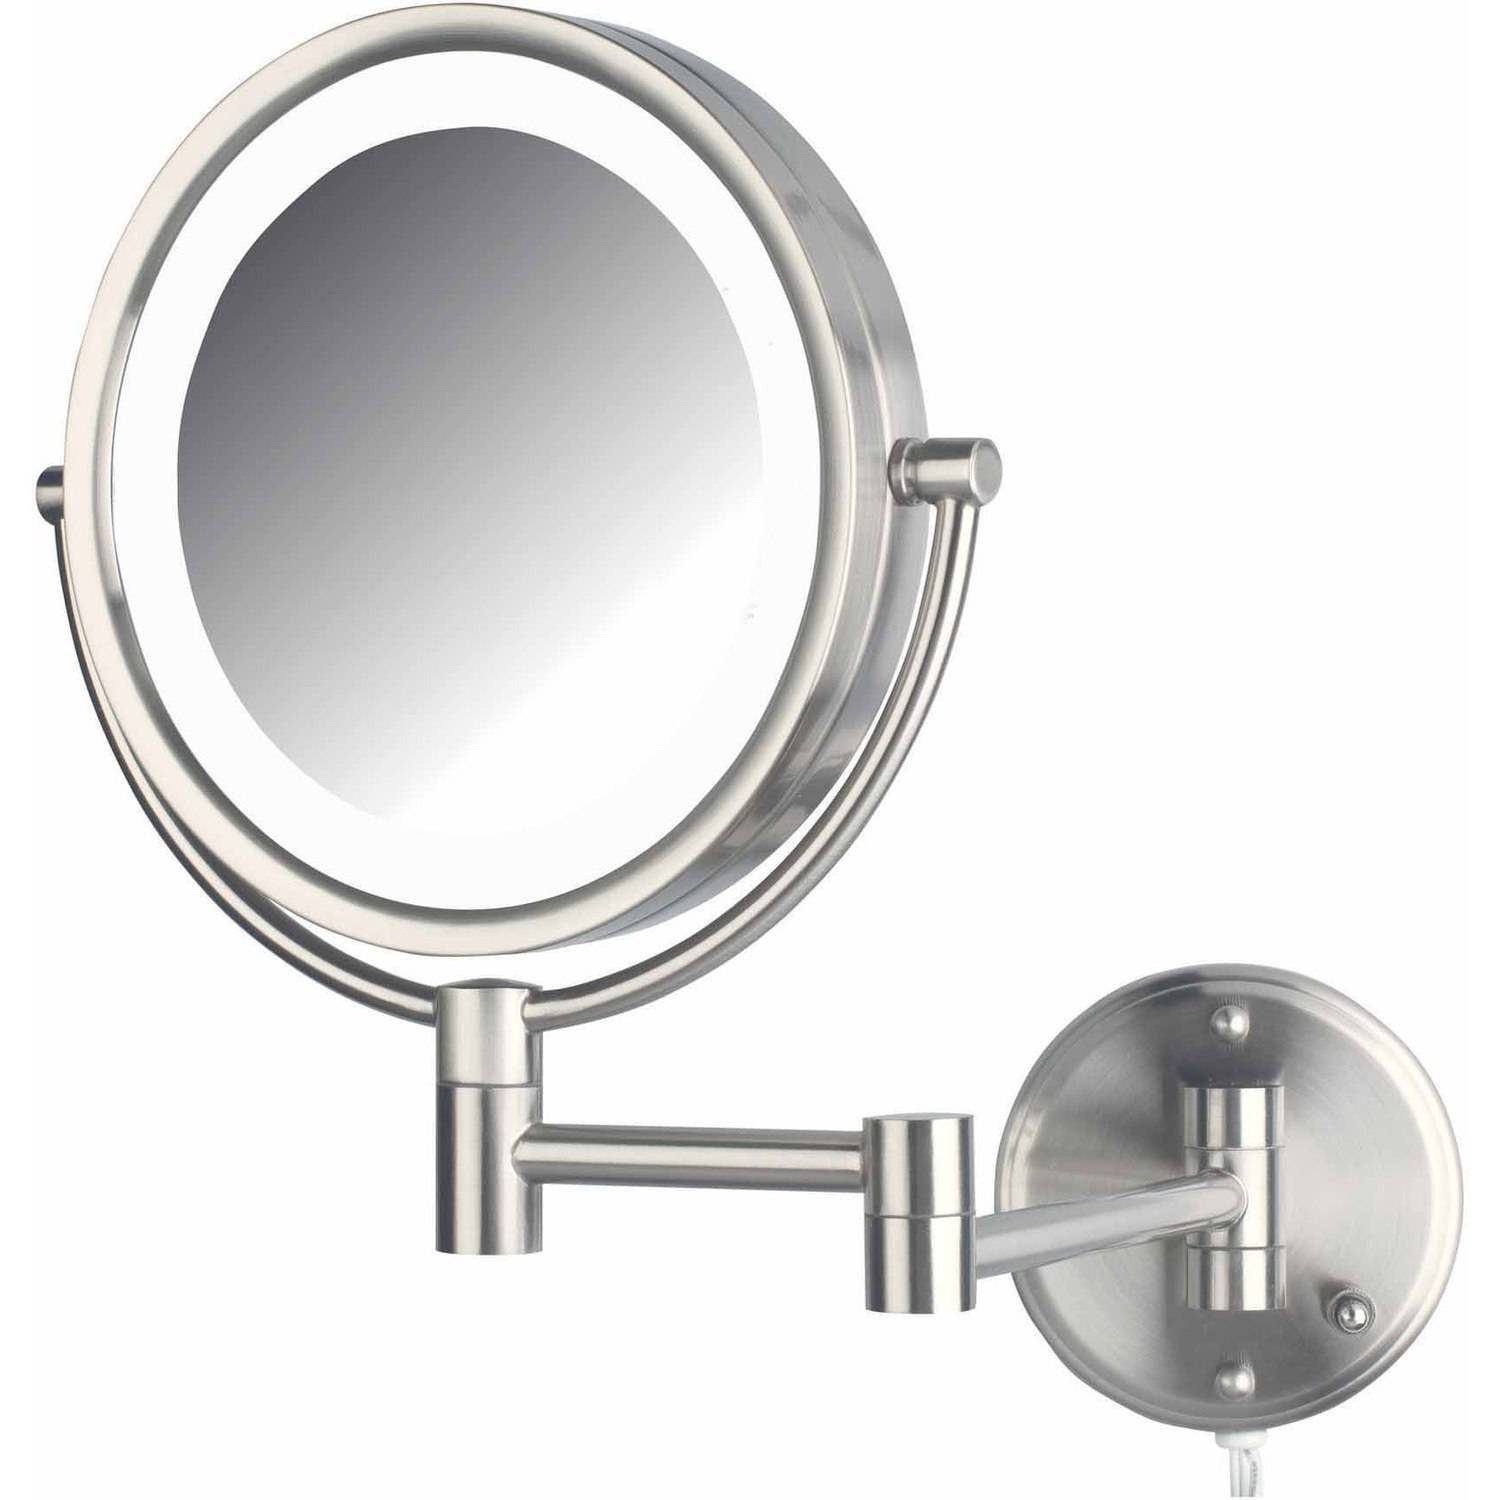 "Jerdon HL88NL 8.5"" LED Lighted Wall Mount Makeup Mirror with 8x Magnification, Nickel Finish"